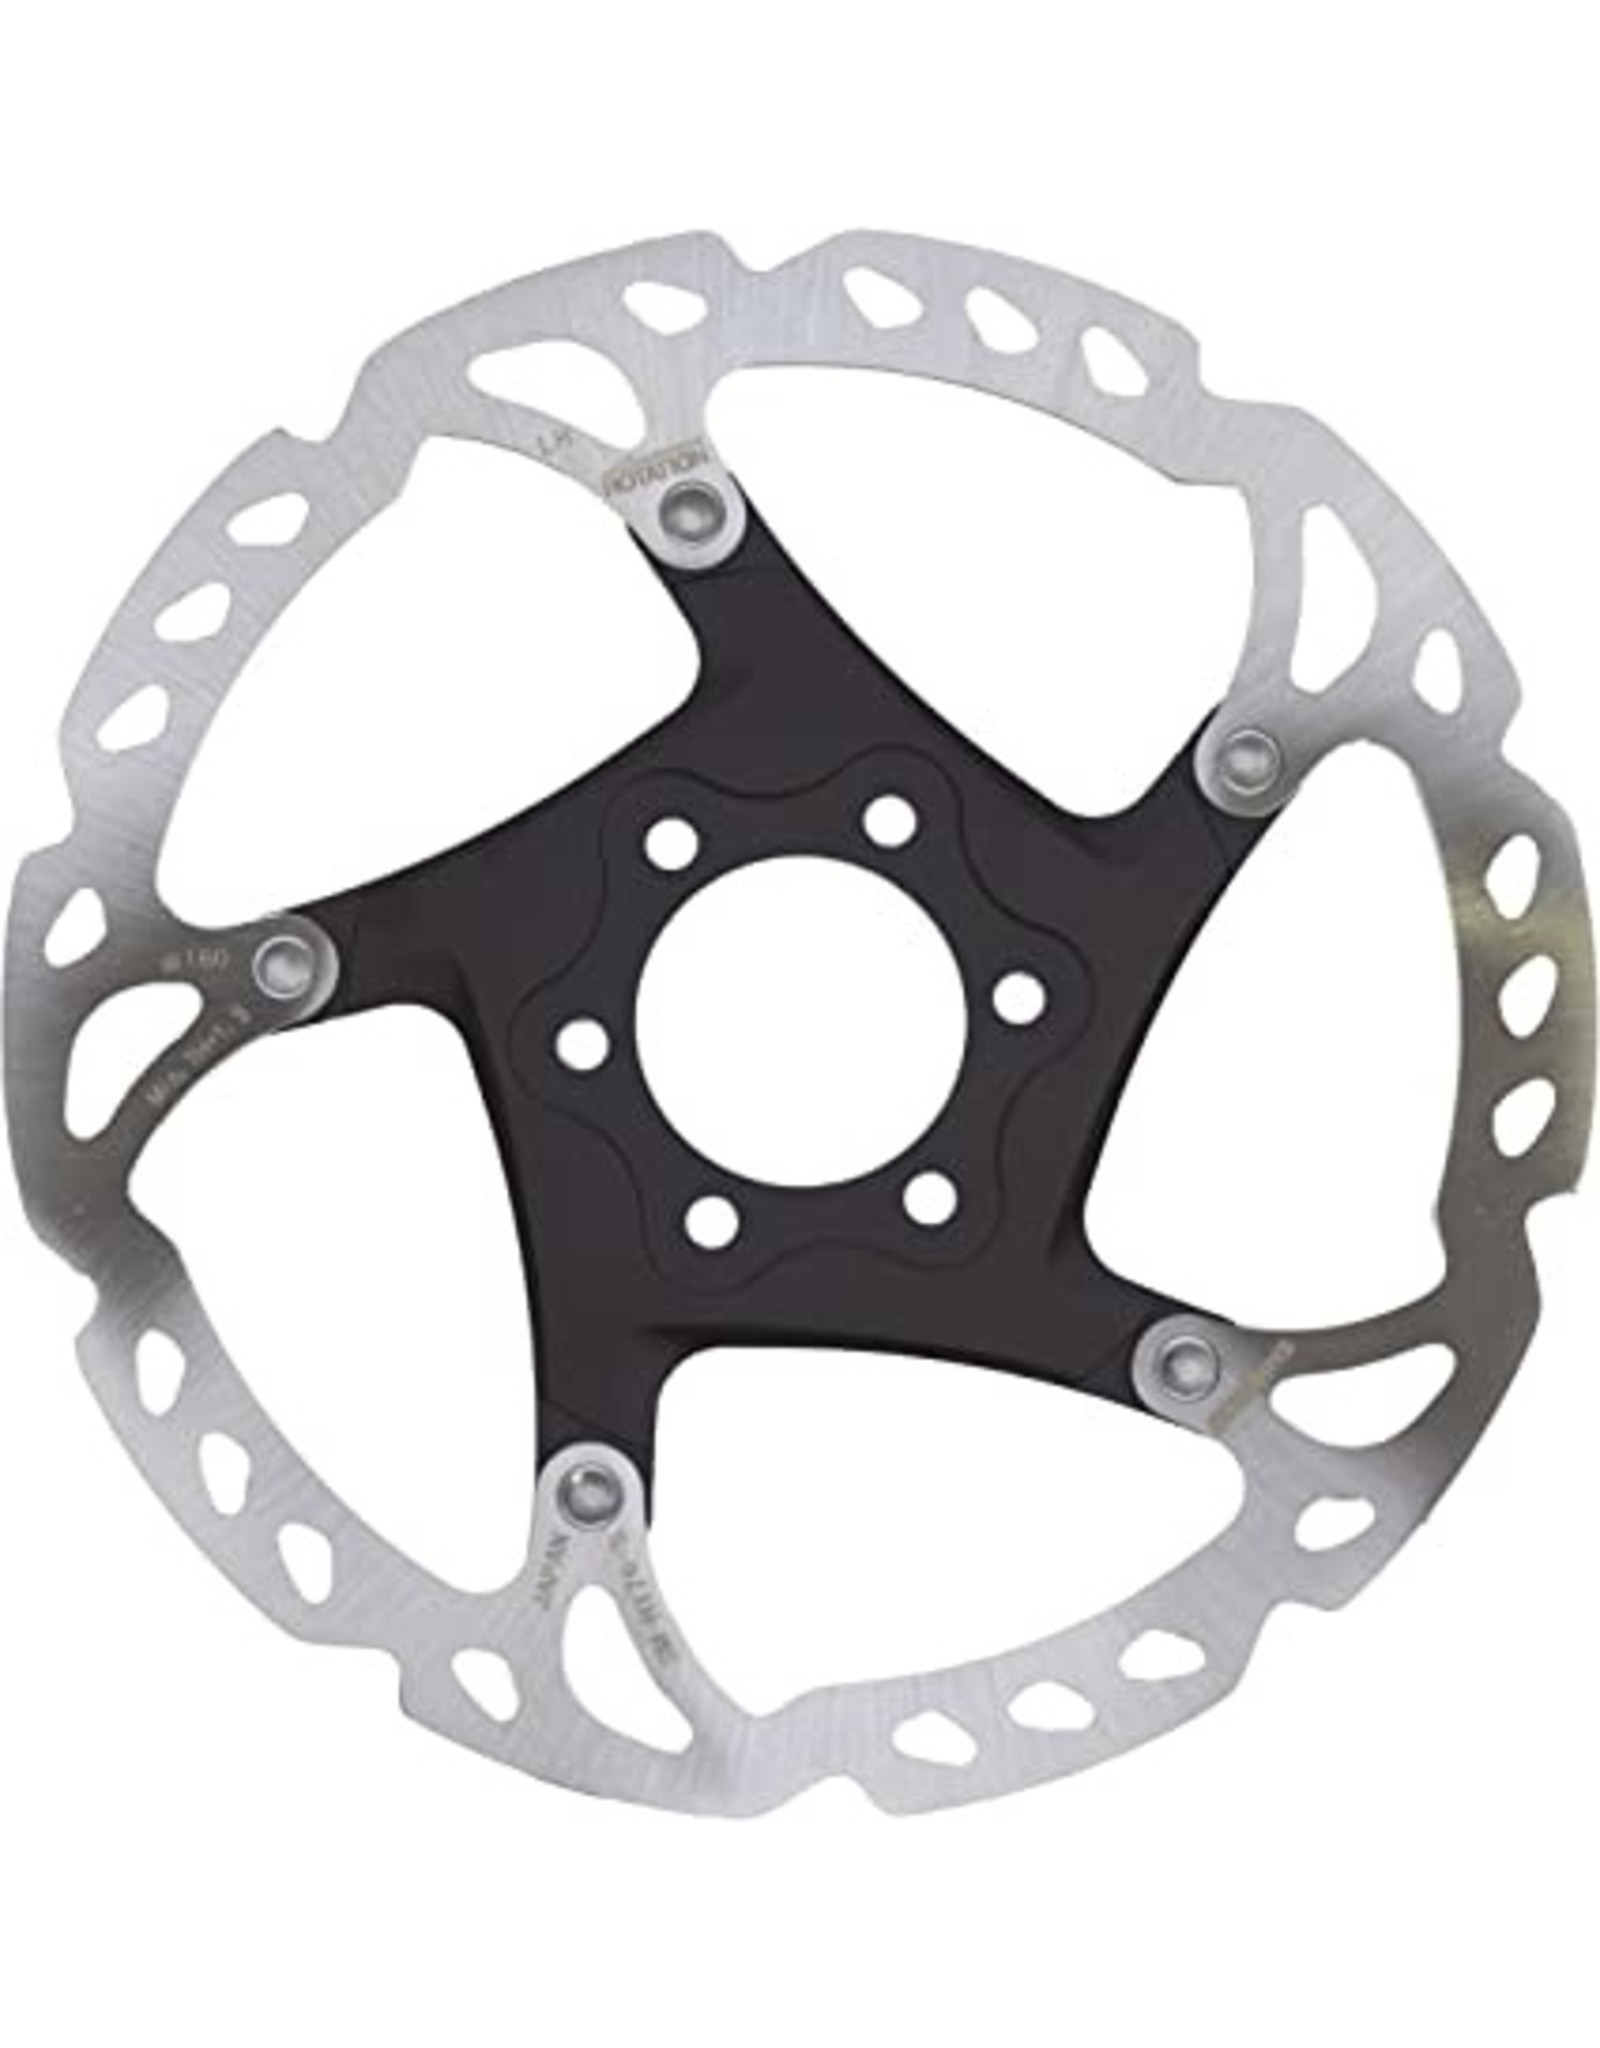 Shimano ROTOR FOR DISC BRAKE, SM-RT76, DEORE XT,S 160MM, 6-BOLT TYPE